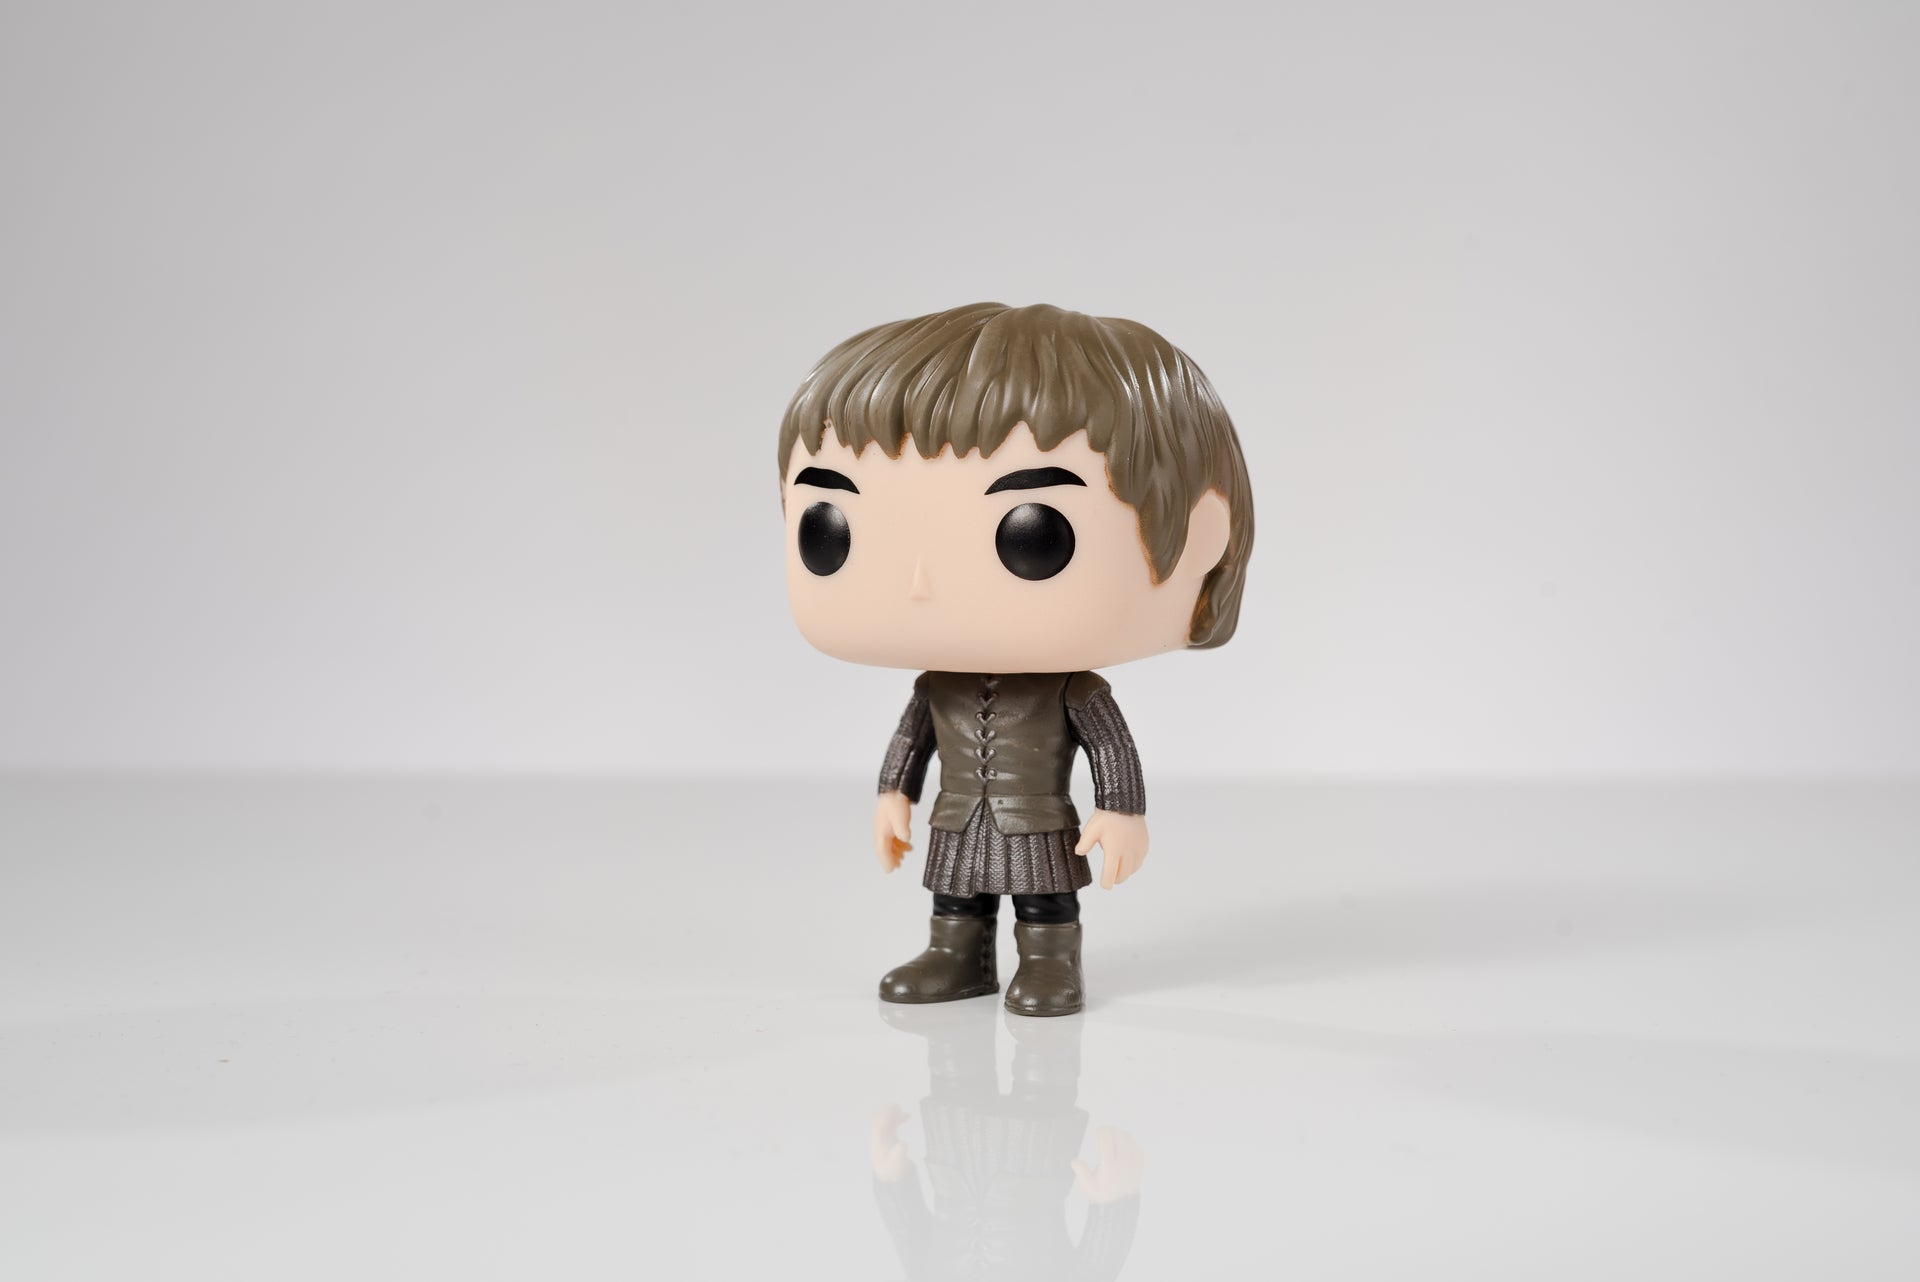 Game of Thrones Pop! Vinyl Figure Bran Stark